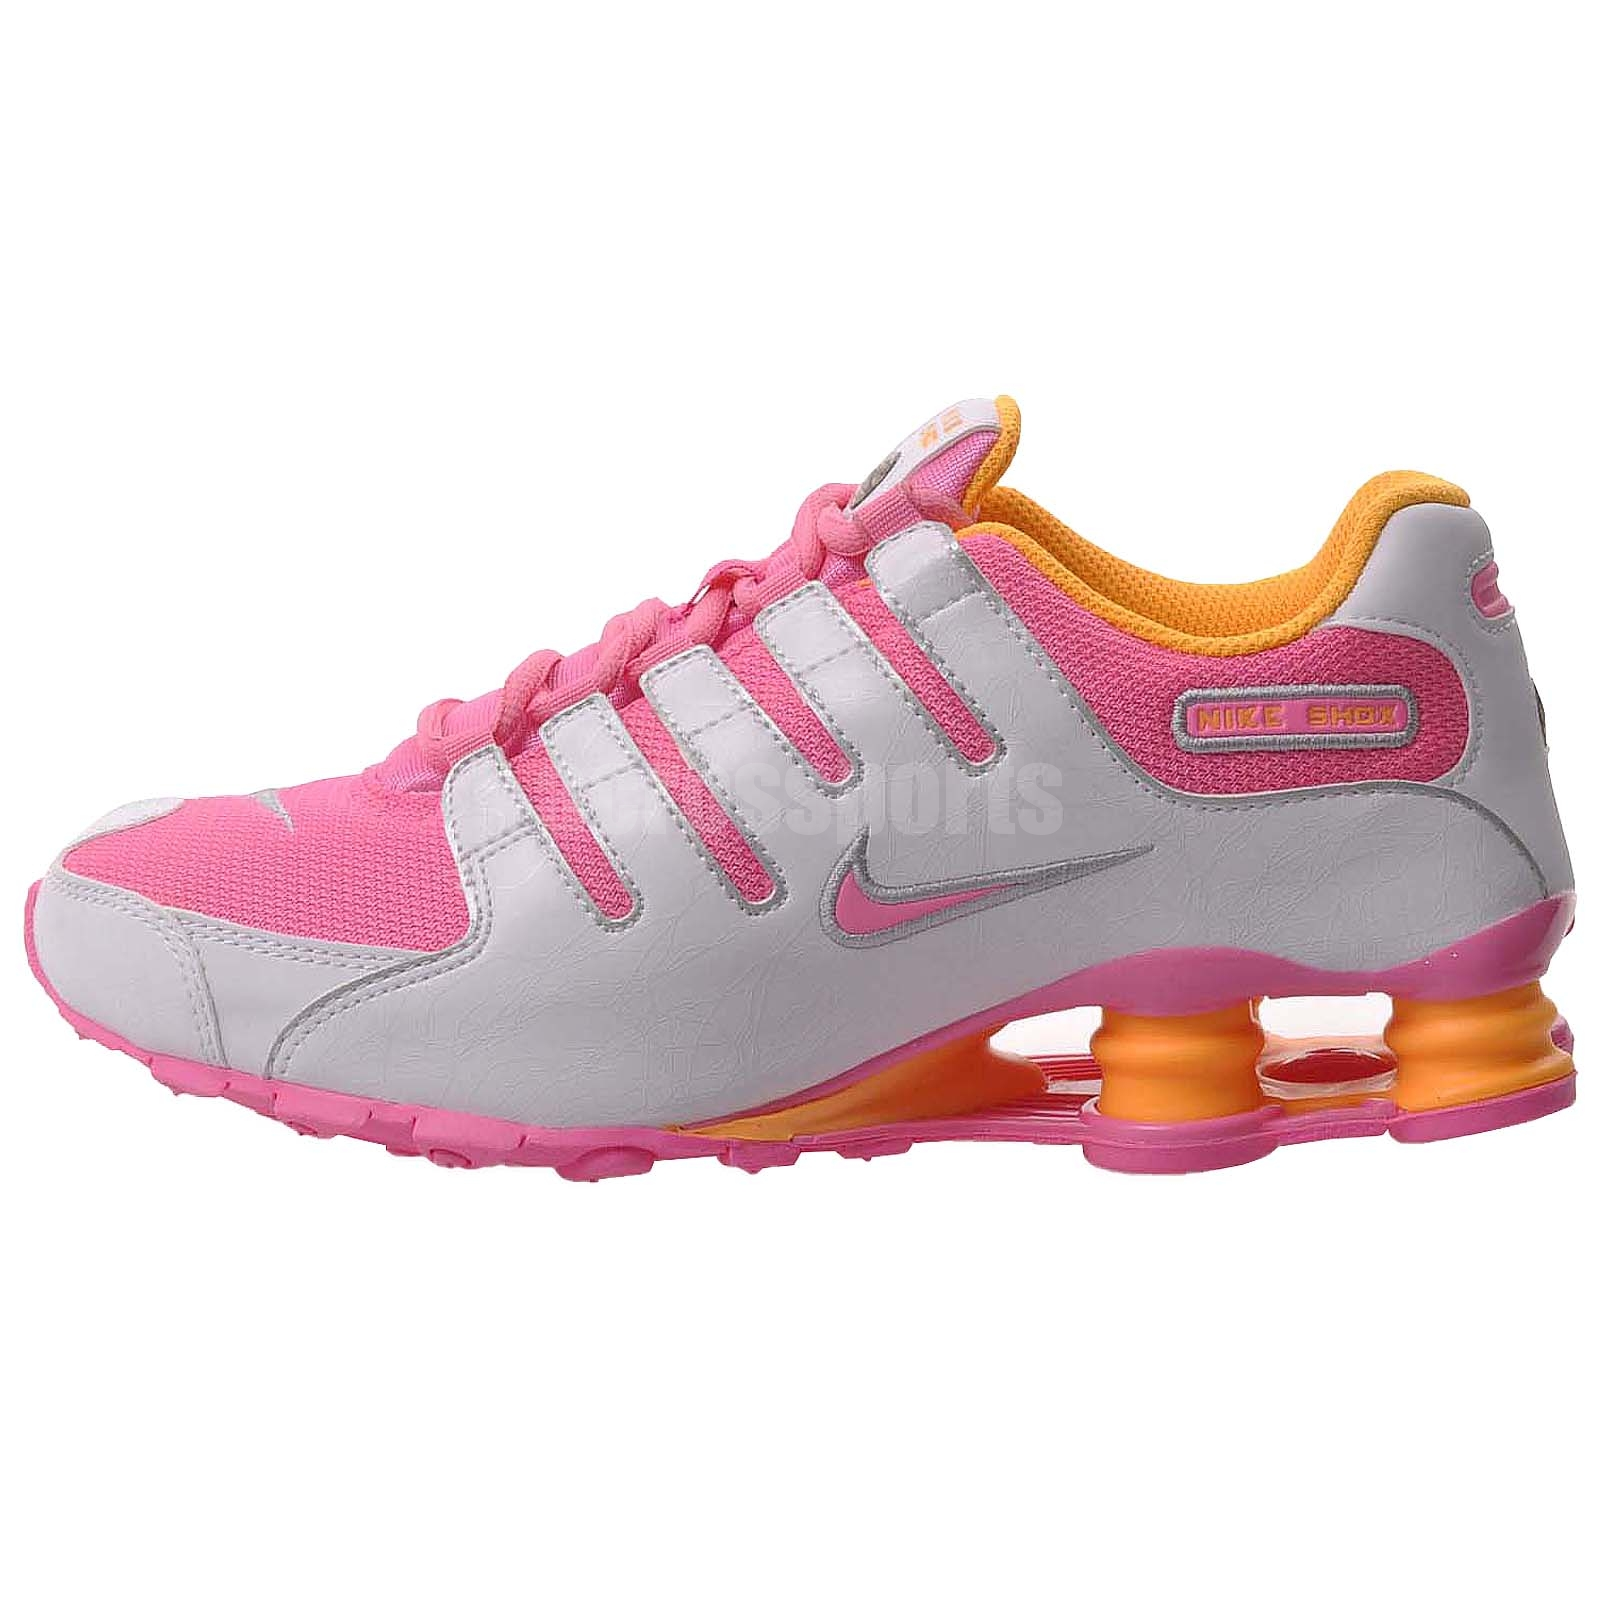 Nike Shox Size 5 Youth - Musée des impressionnismes Giverny 1599e6f60278